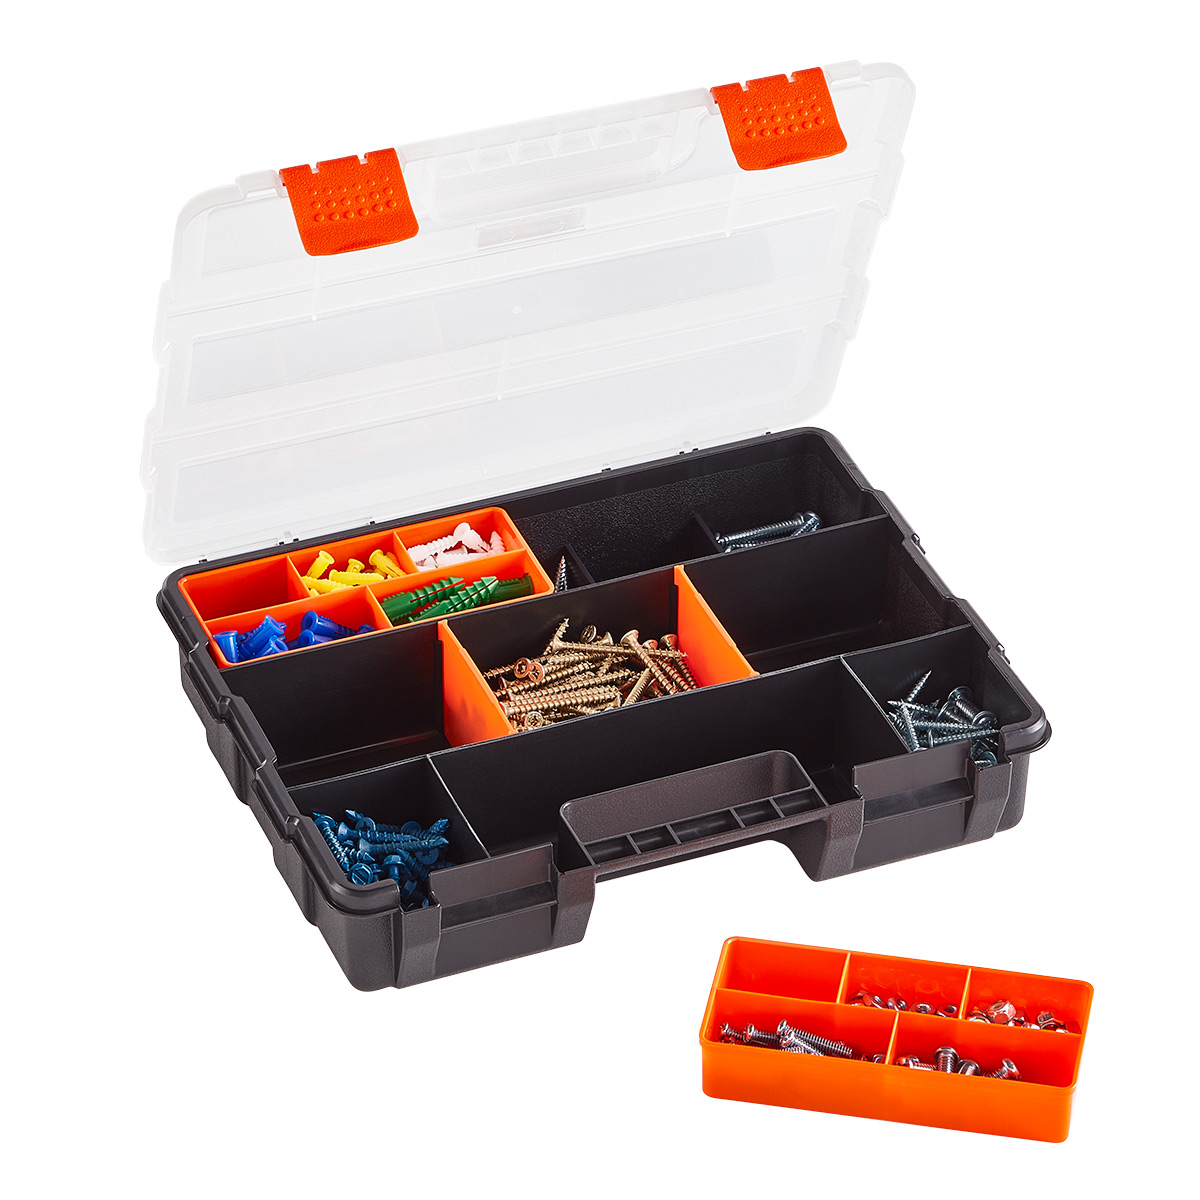 Small Parts Organizer with Removable Bins & Dividers